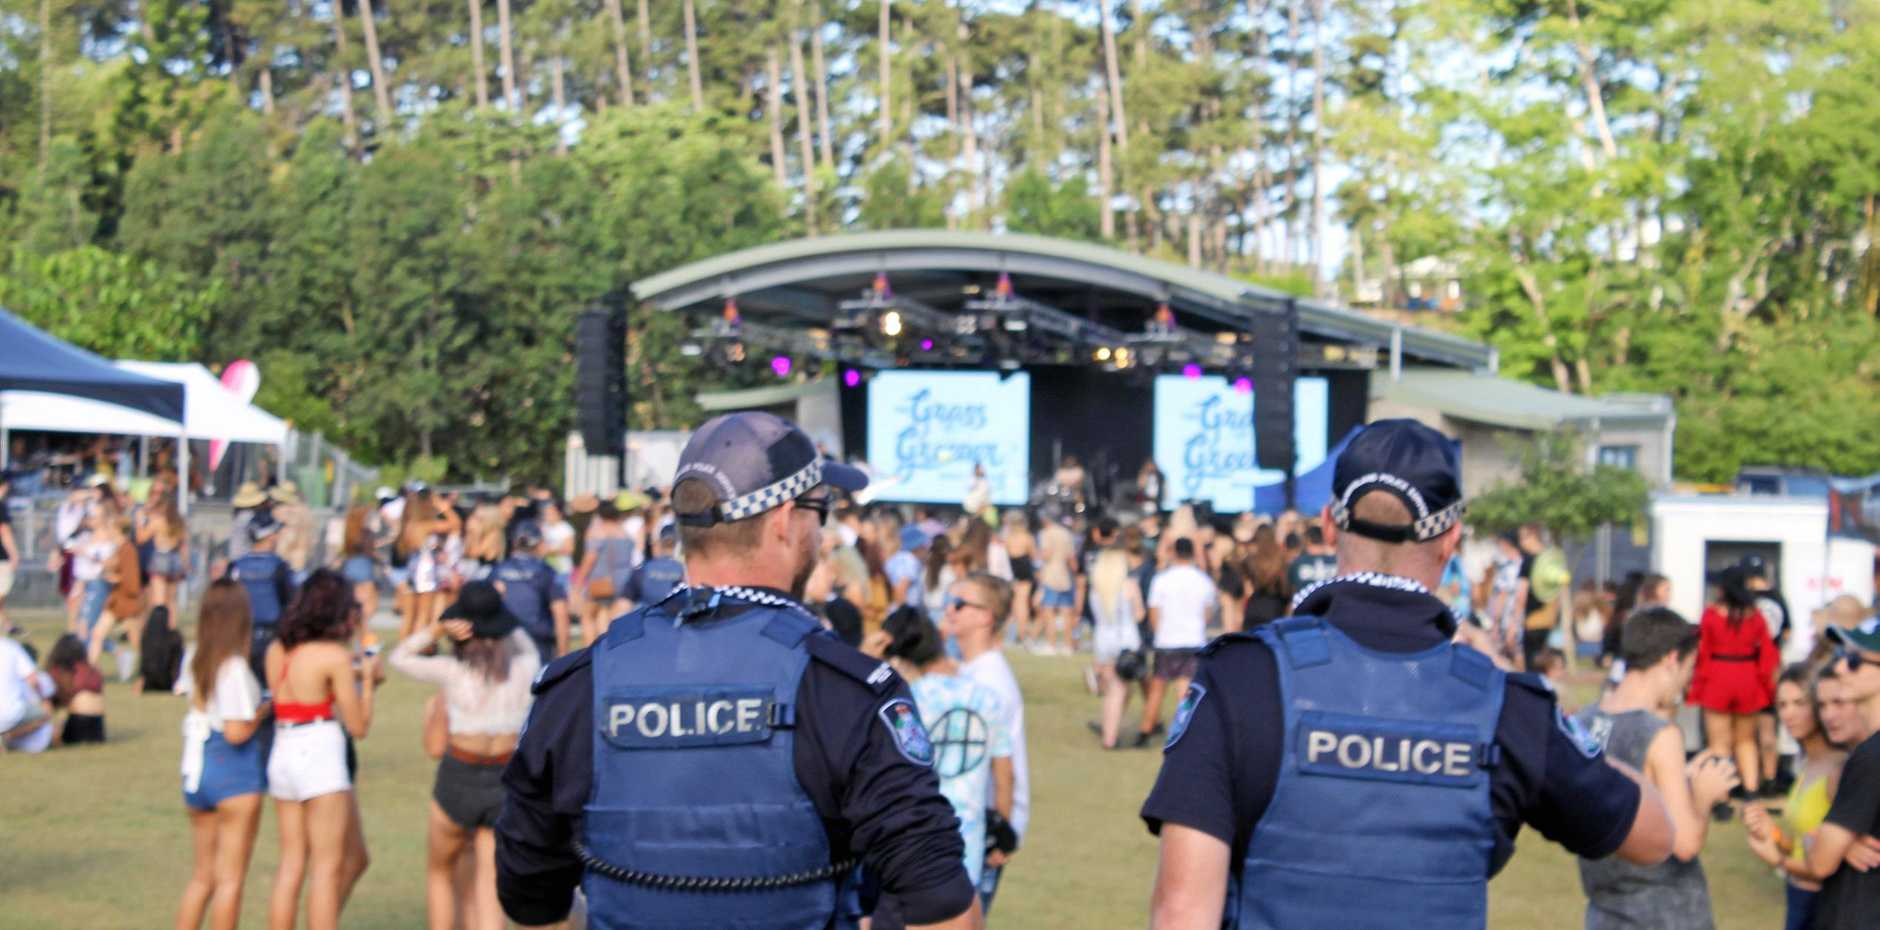 Police patrolling The Grass is Greener music festival at Mackay Botanic Gardens.